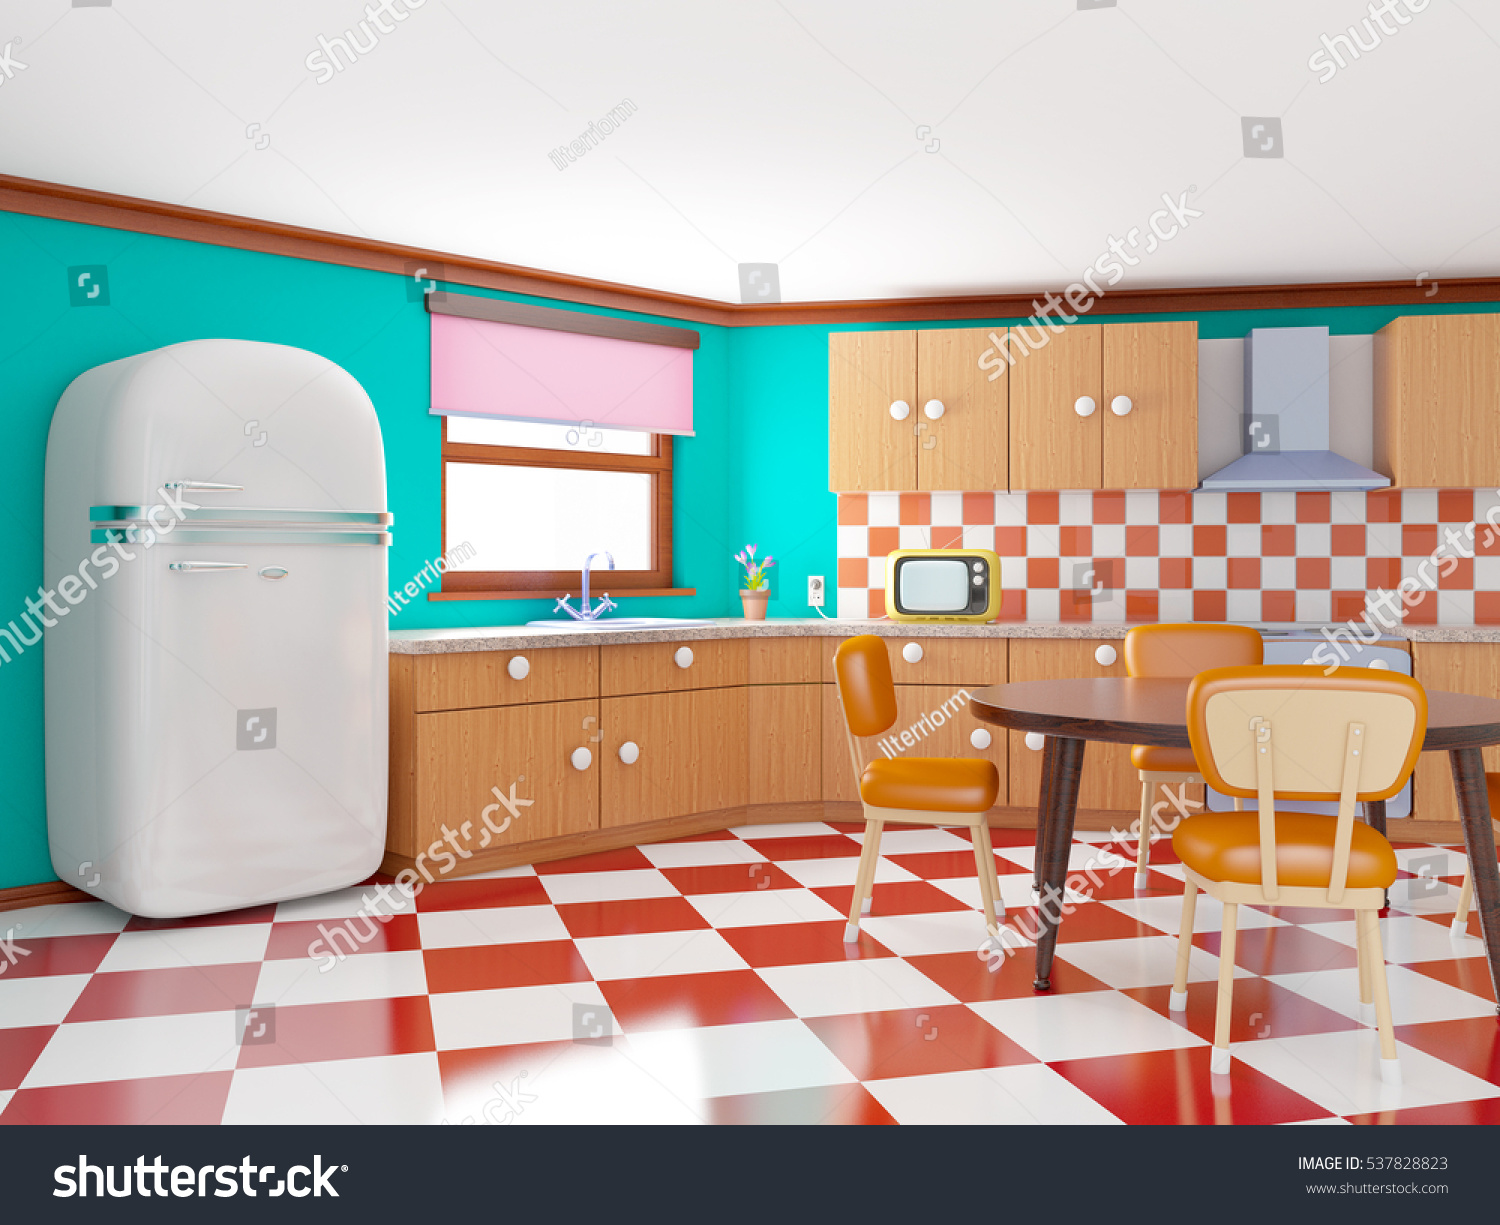 retro kitchen in cartoon style with checkered floor 3d